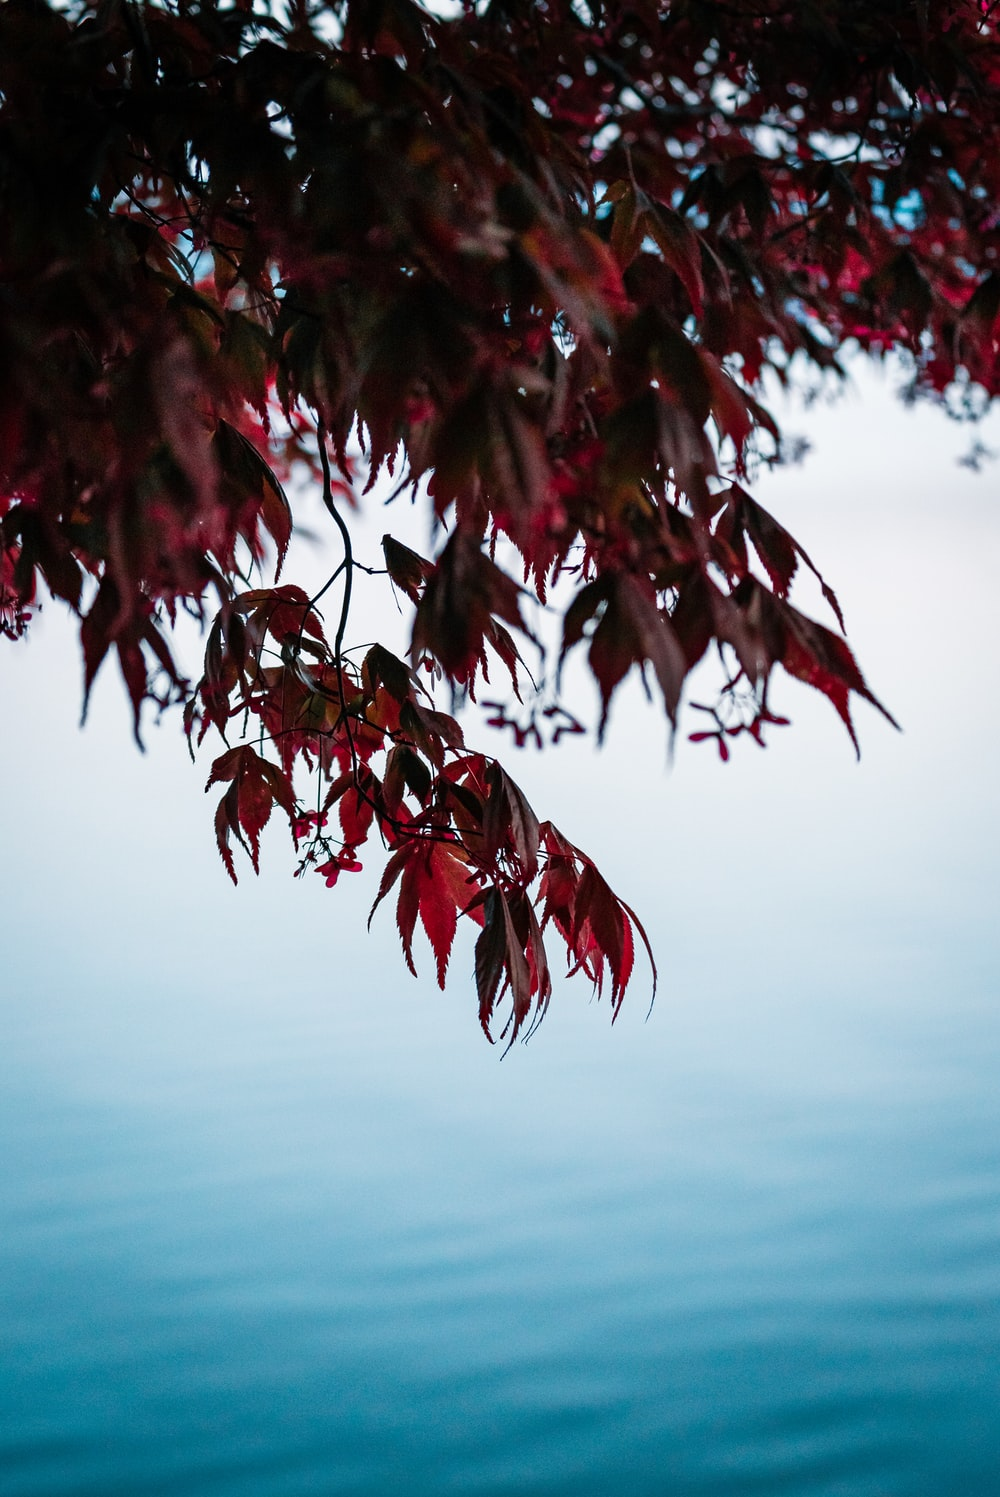 calm water by maroon leafed tree